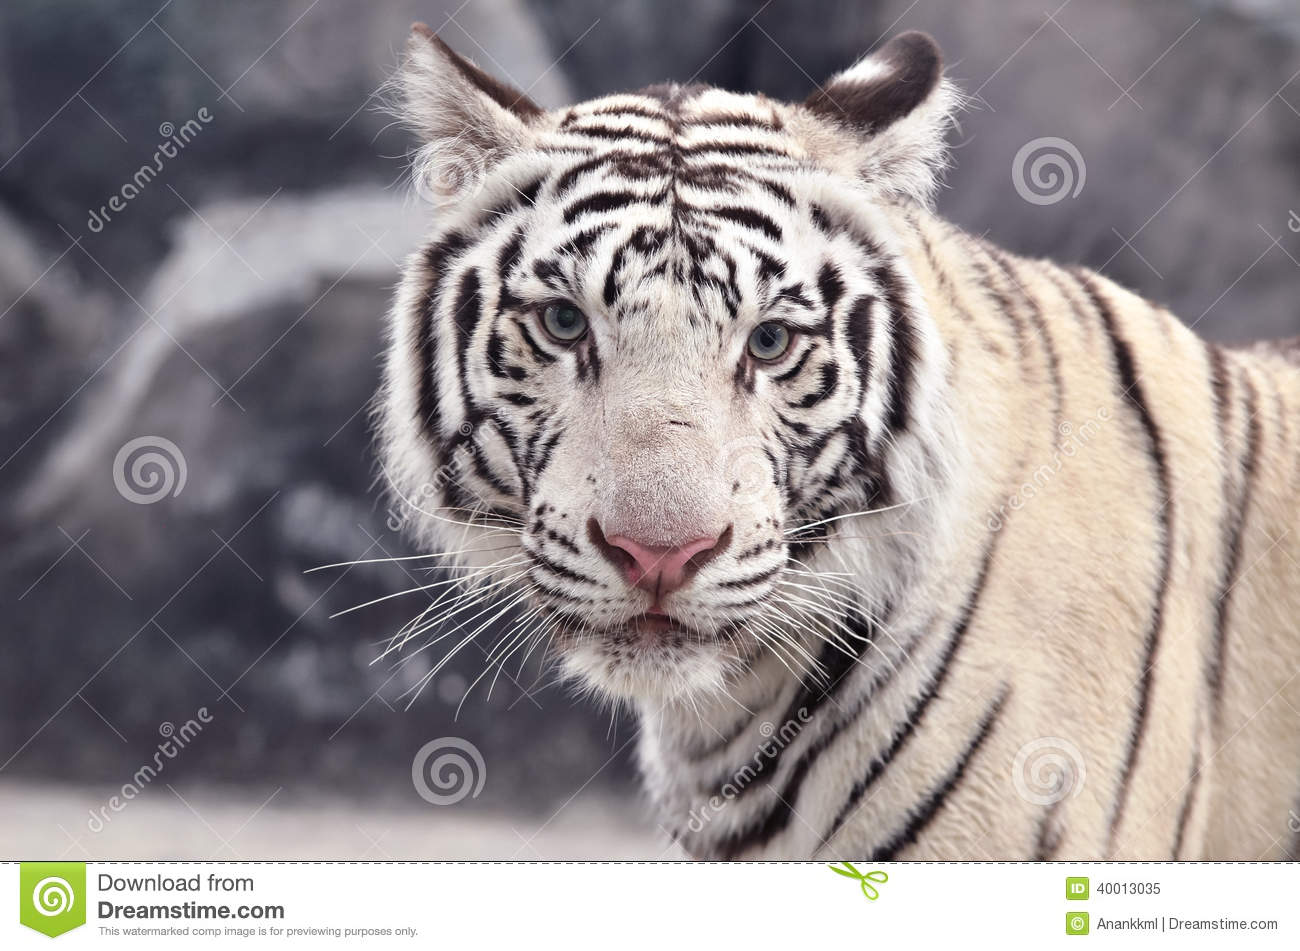 White tiger close up face - photo#18